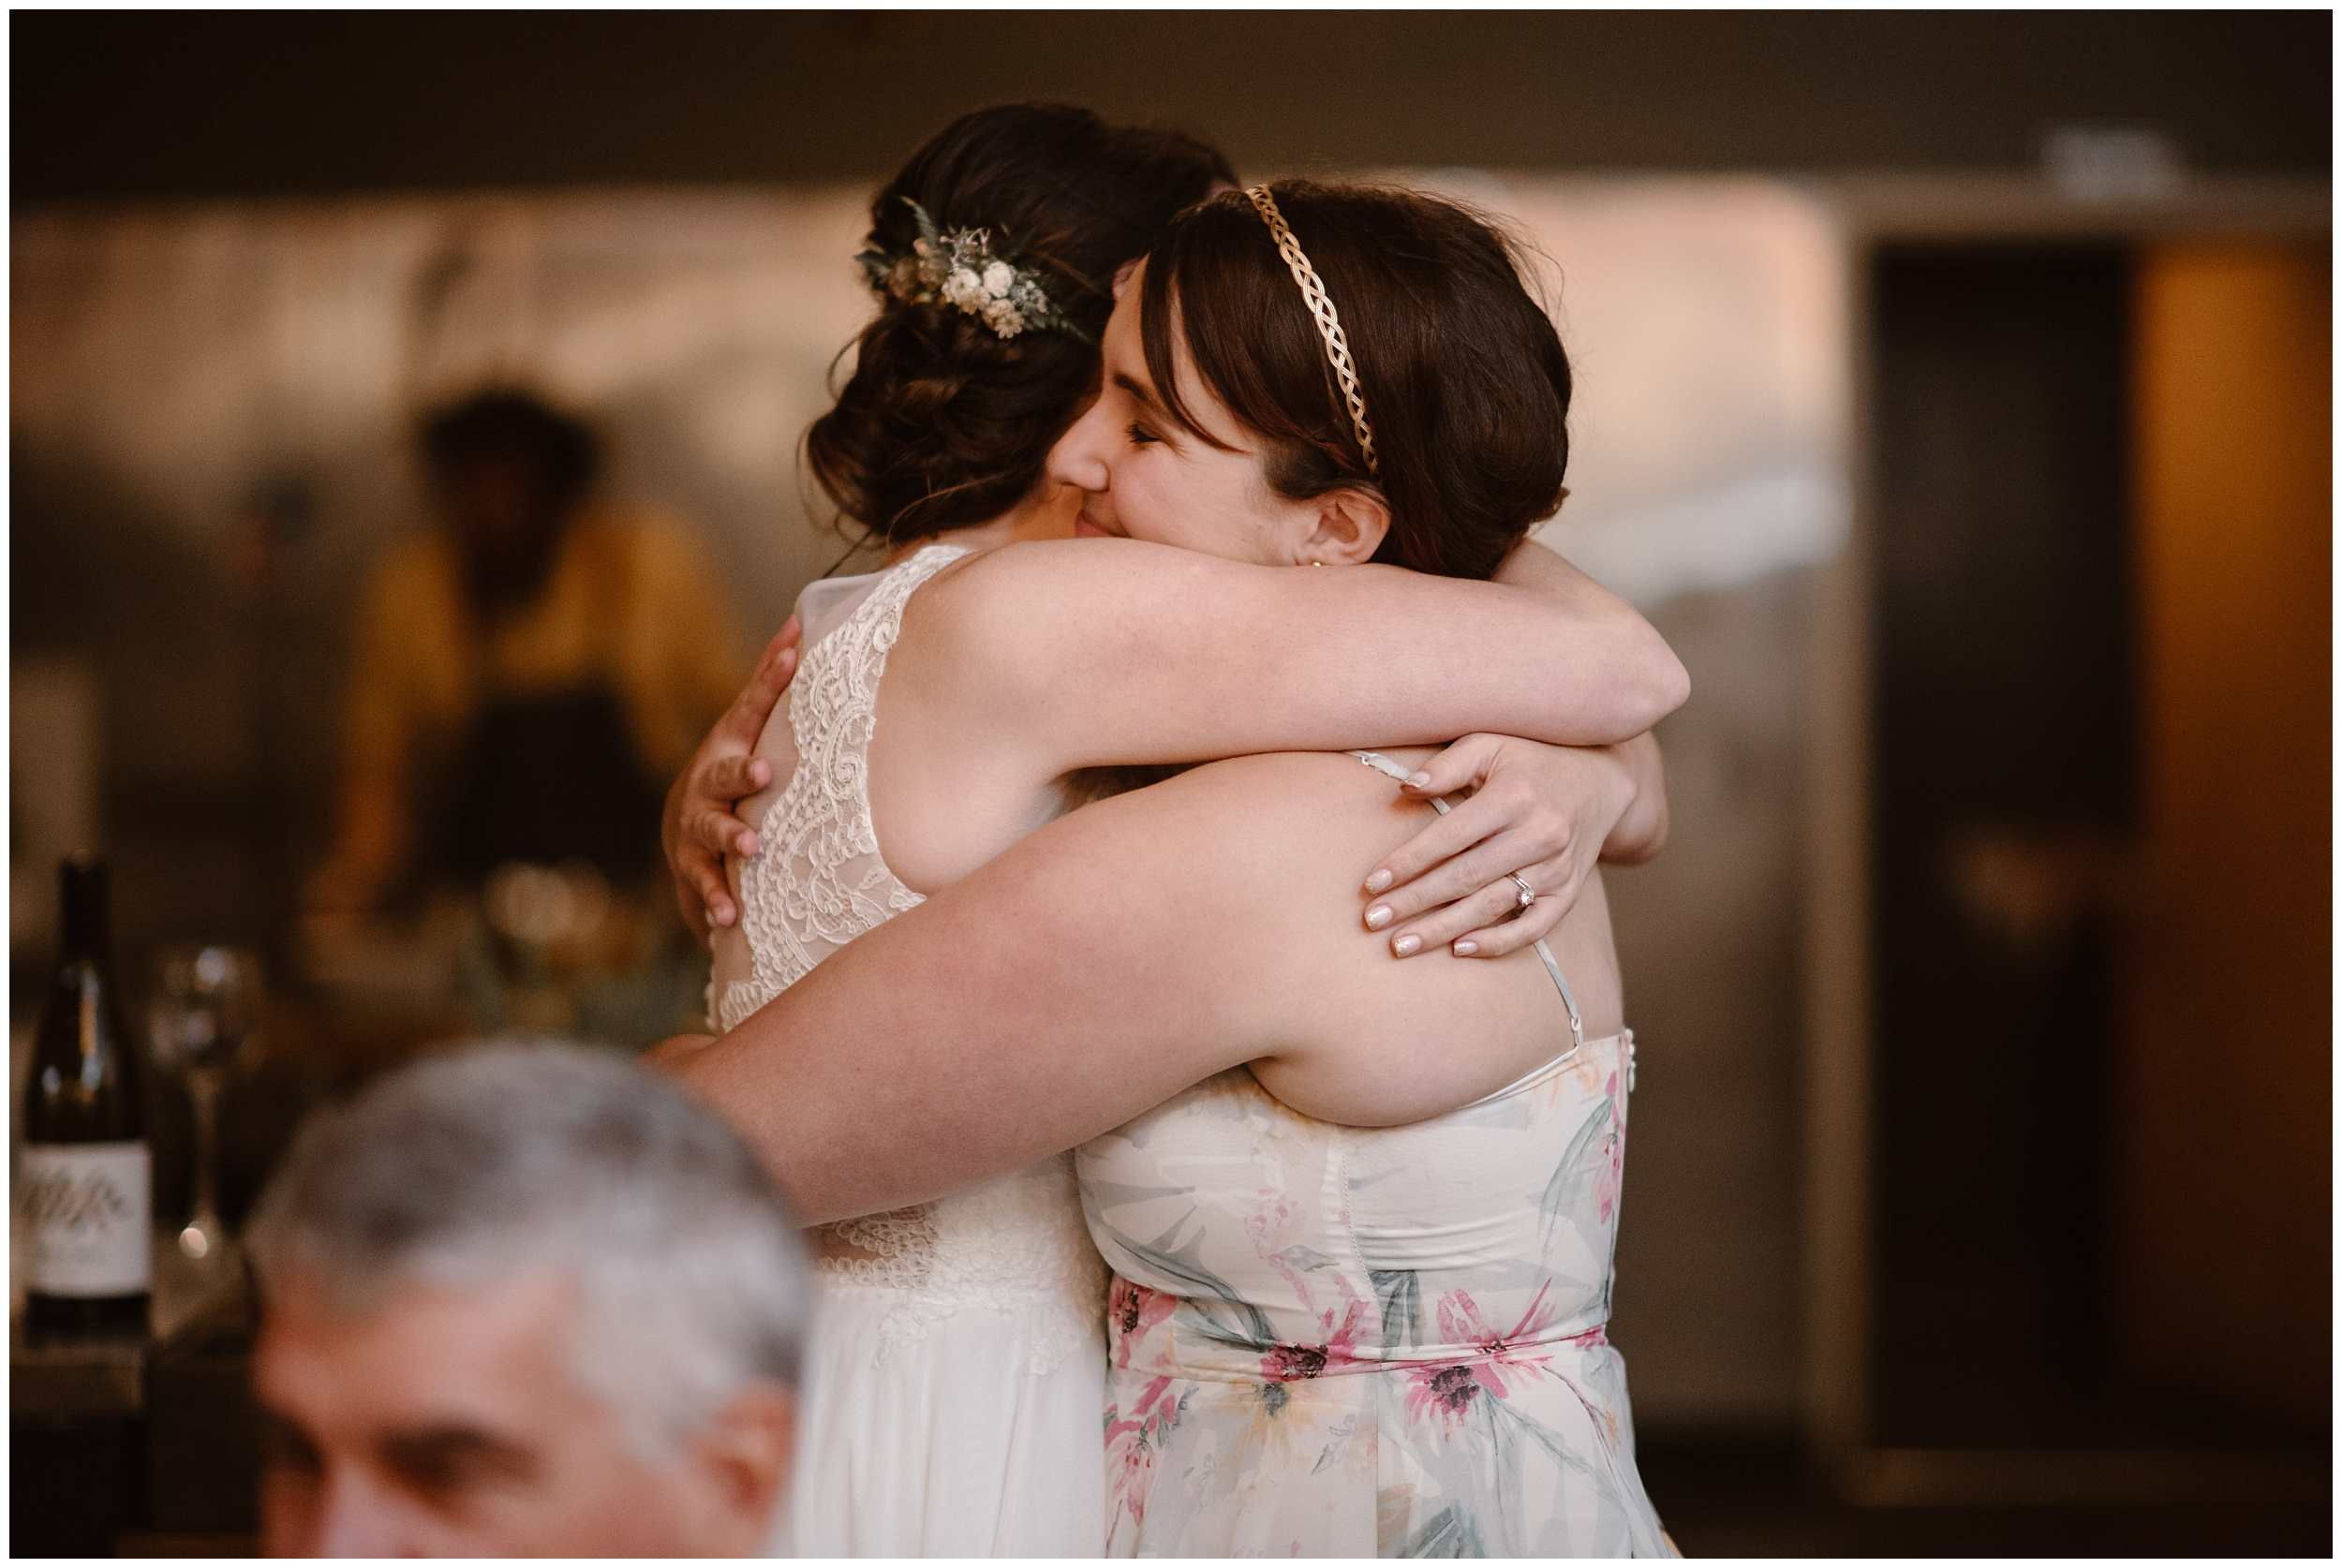 Lauryn , the bride, hugs a wedding guest at a Portland restaurant during the party after eloping.